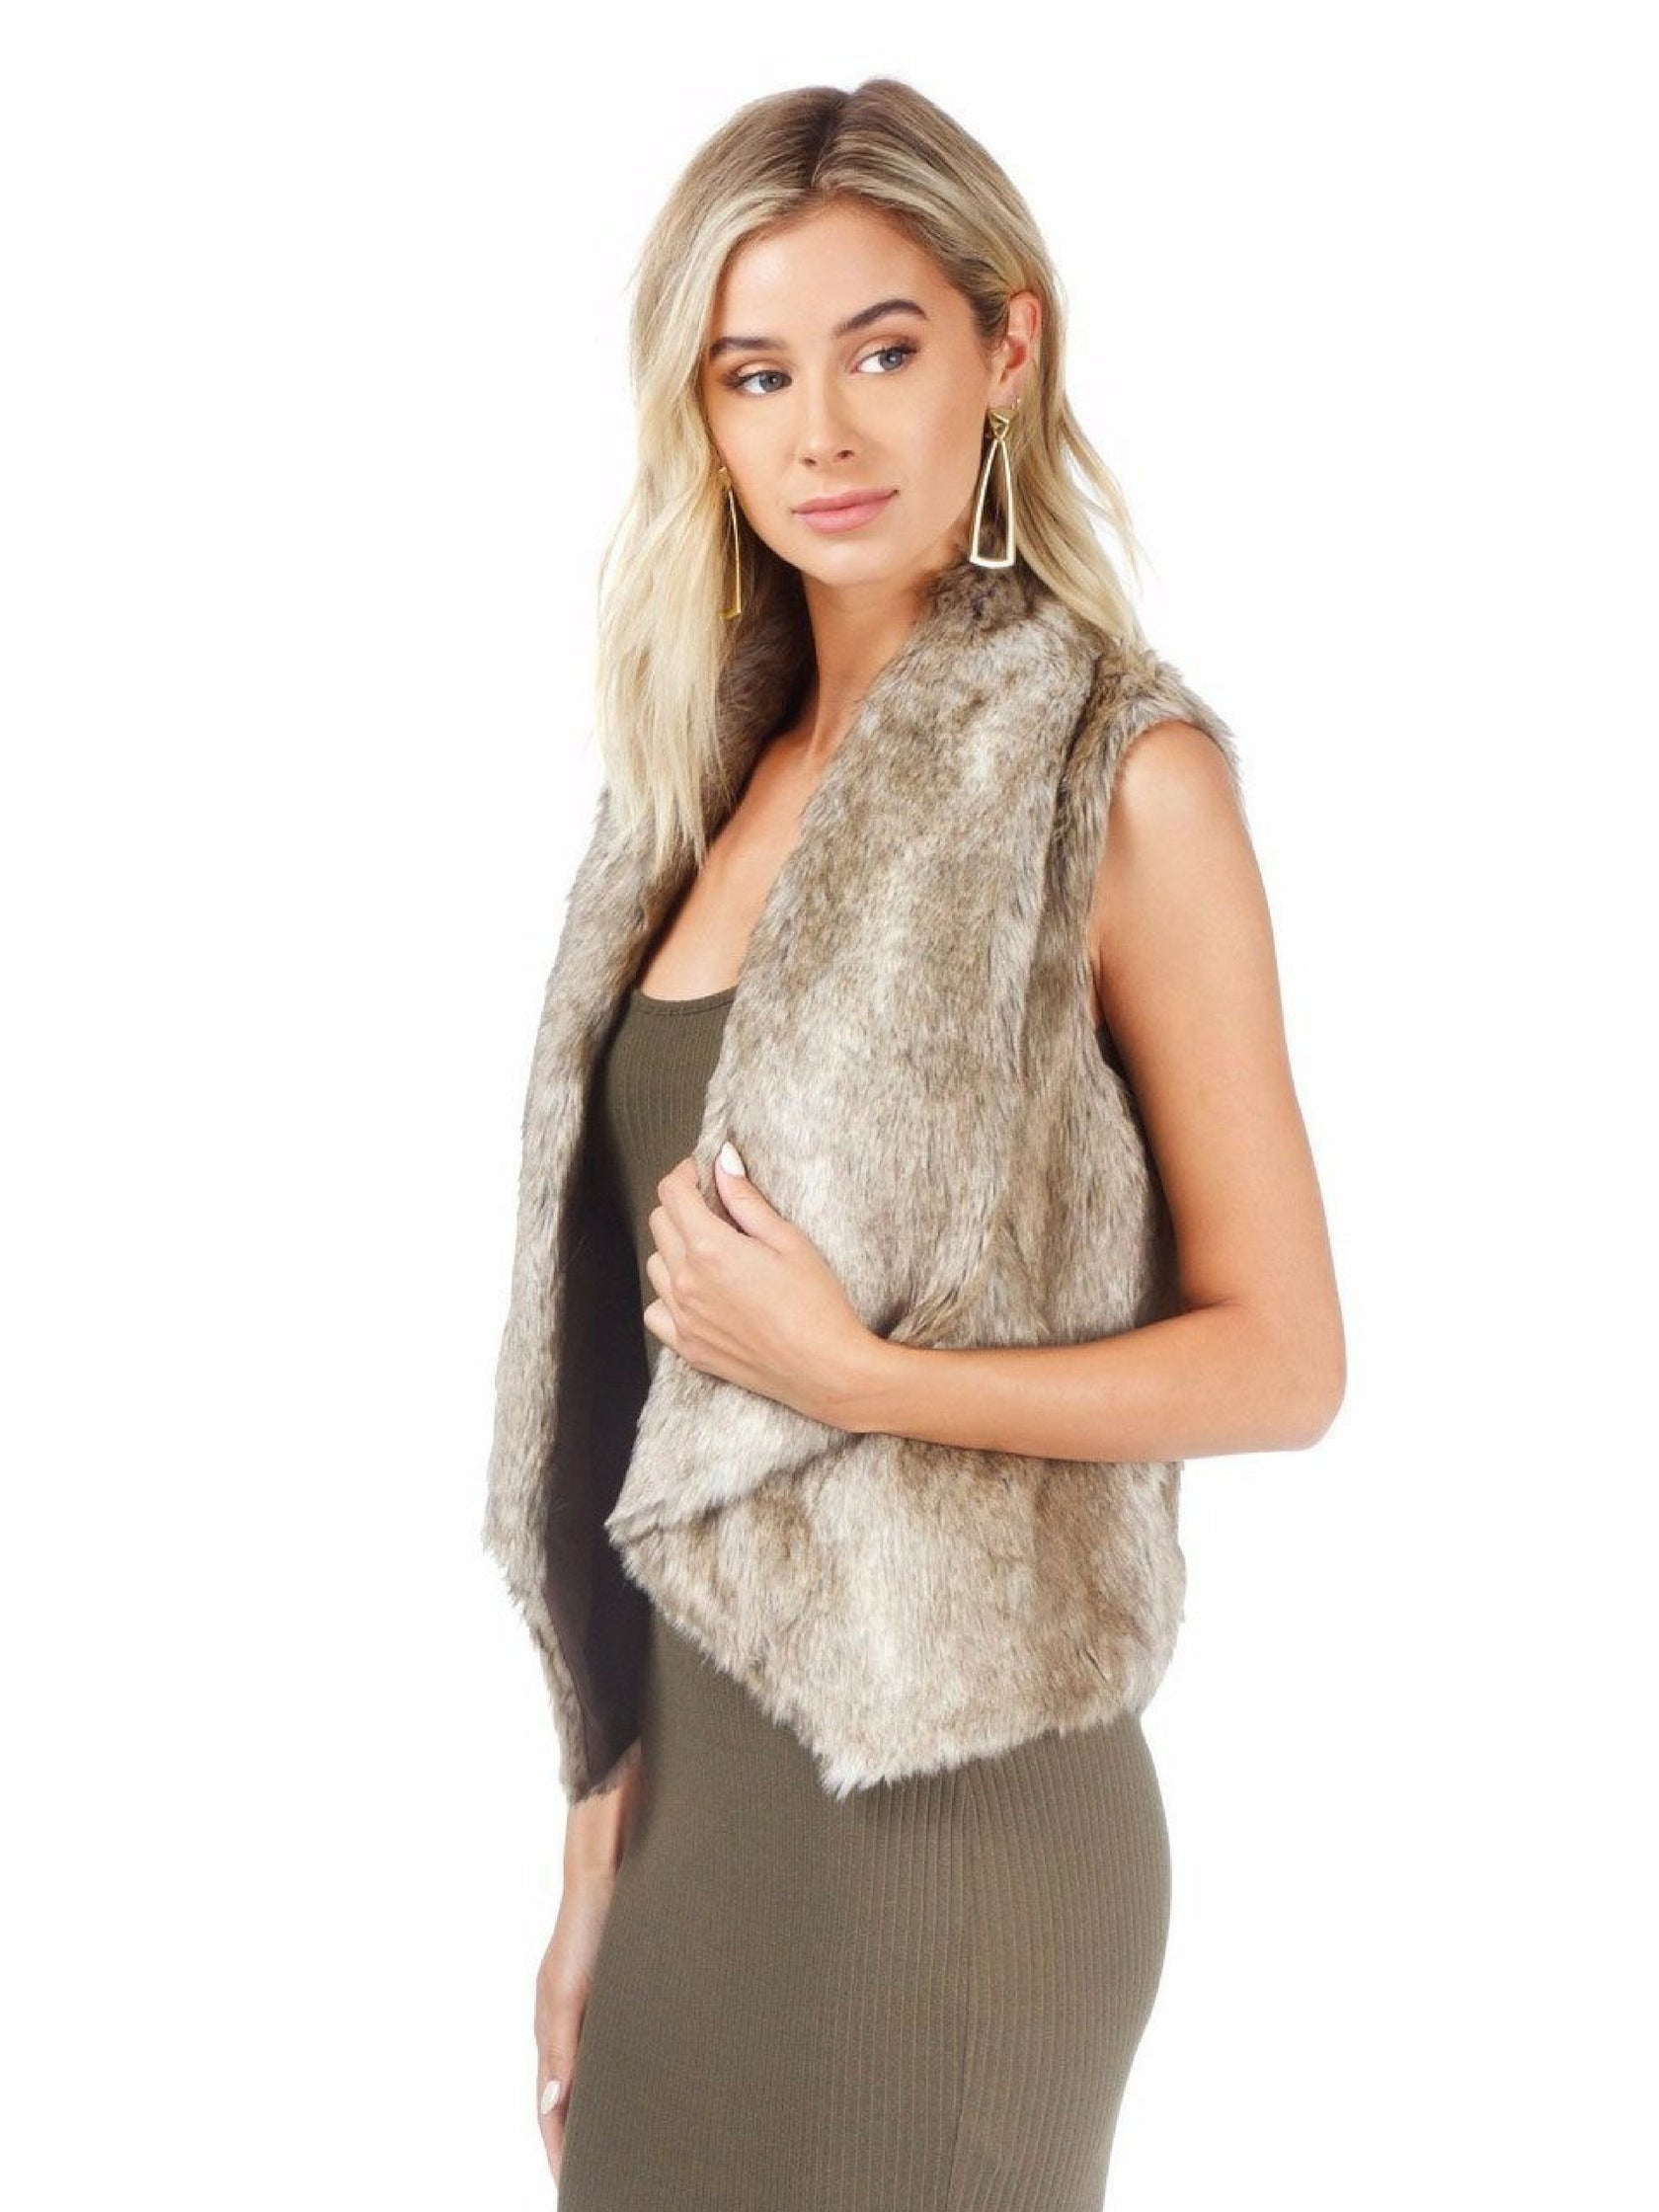 Women wearing a vest rental from BB Dakota called Jack By Bb Dakota Faux Fur Dwight Vest